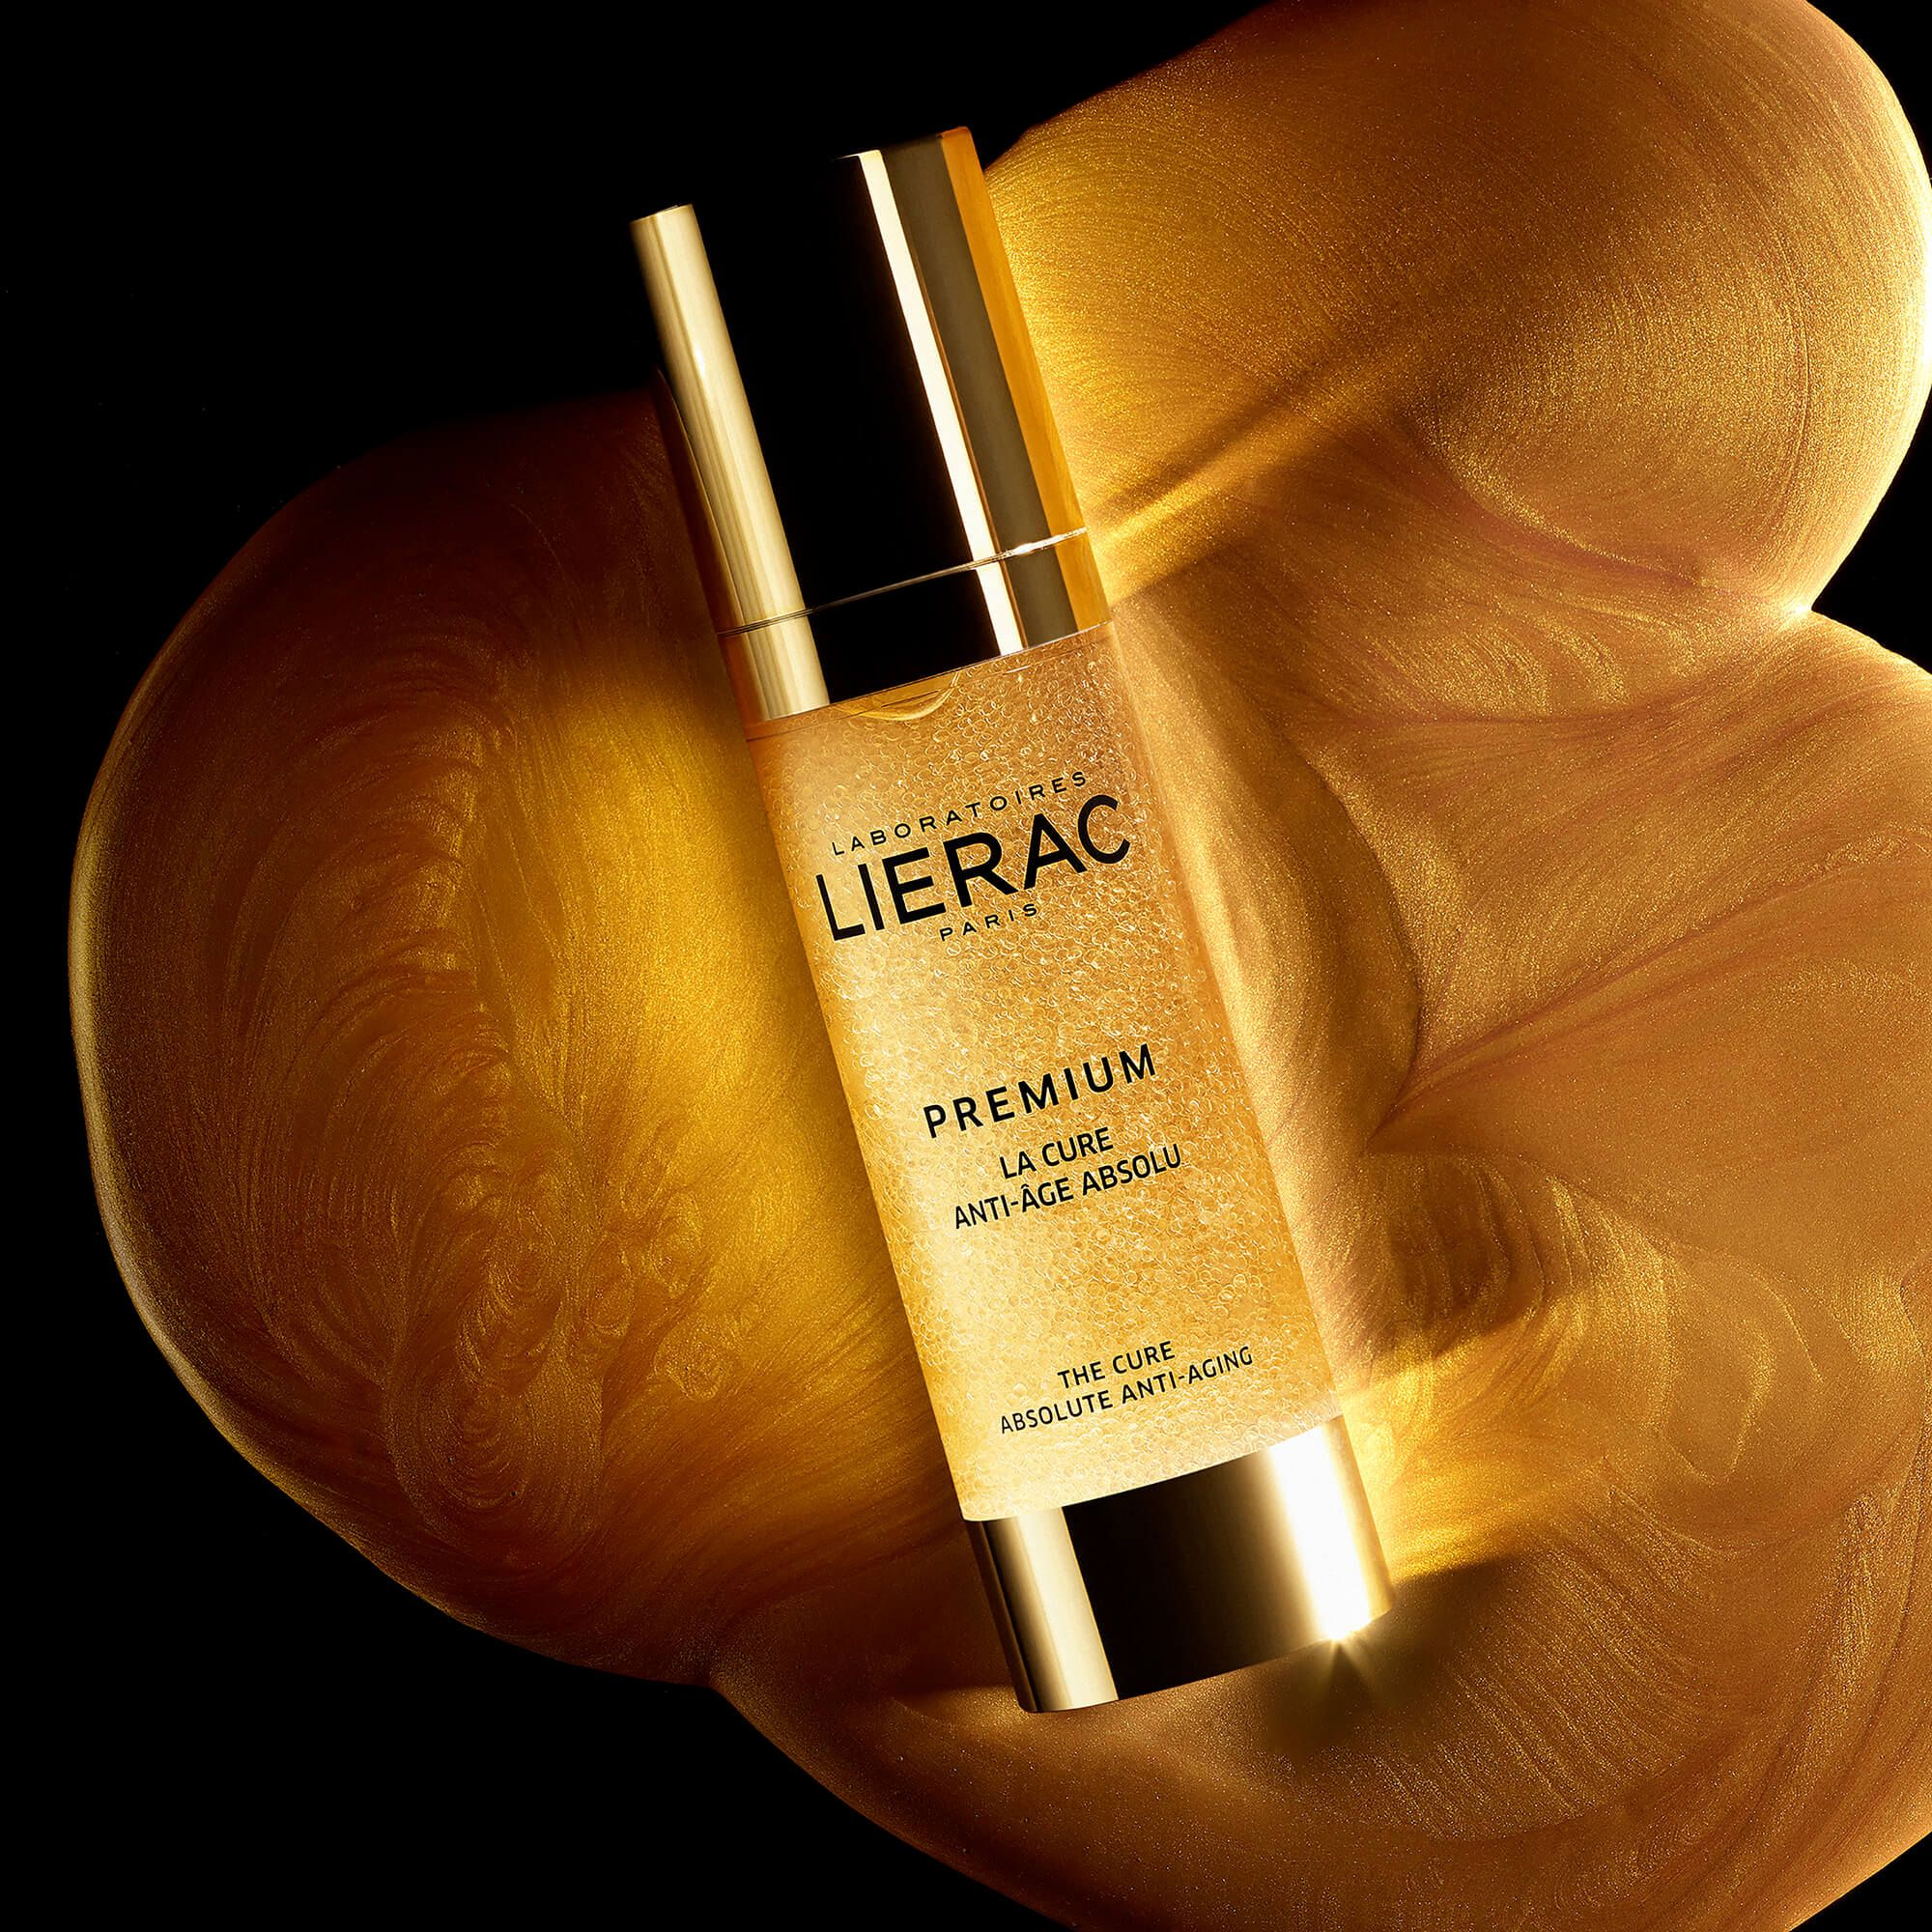 Laboratoires Lierac - Cutting-edge dermocosmetics